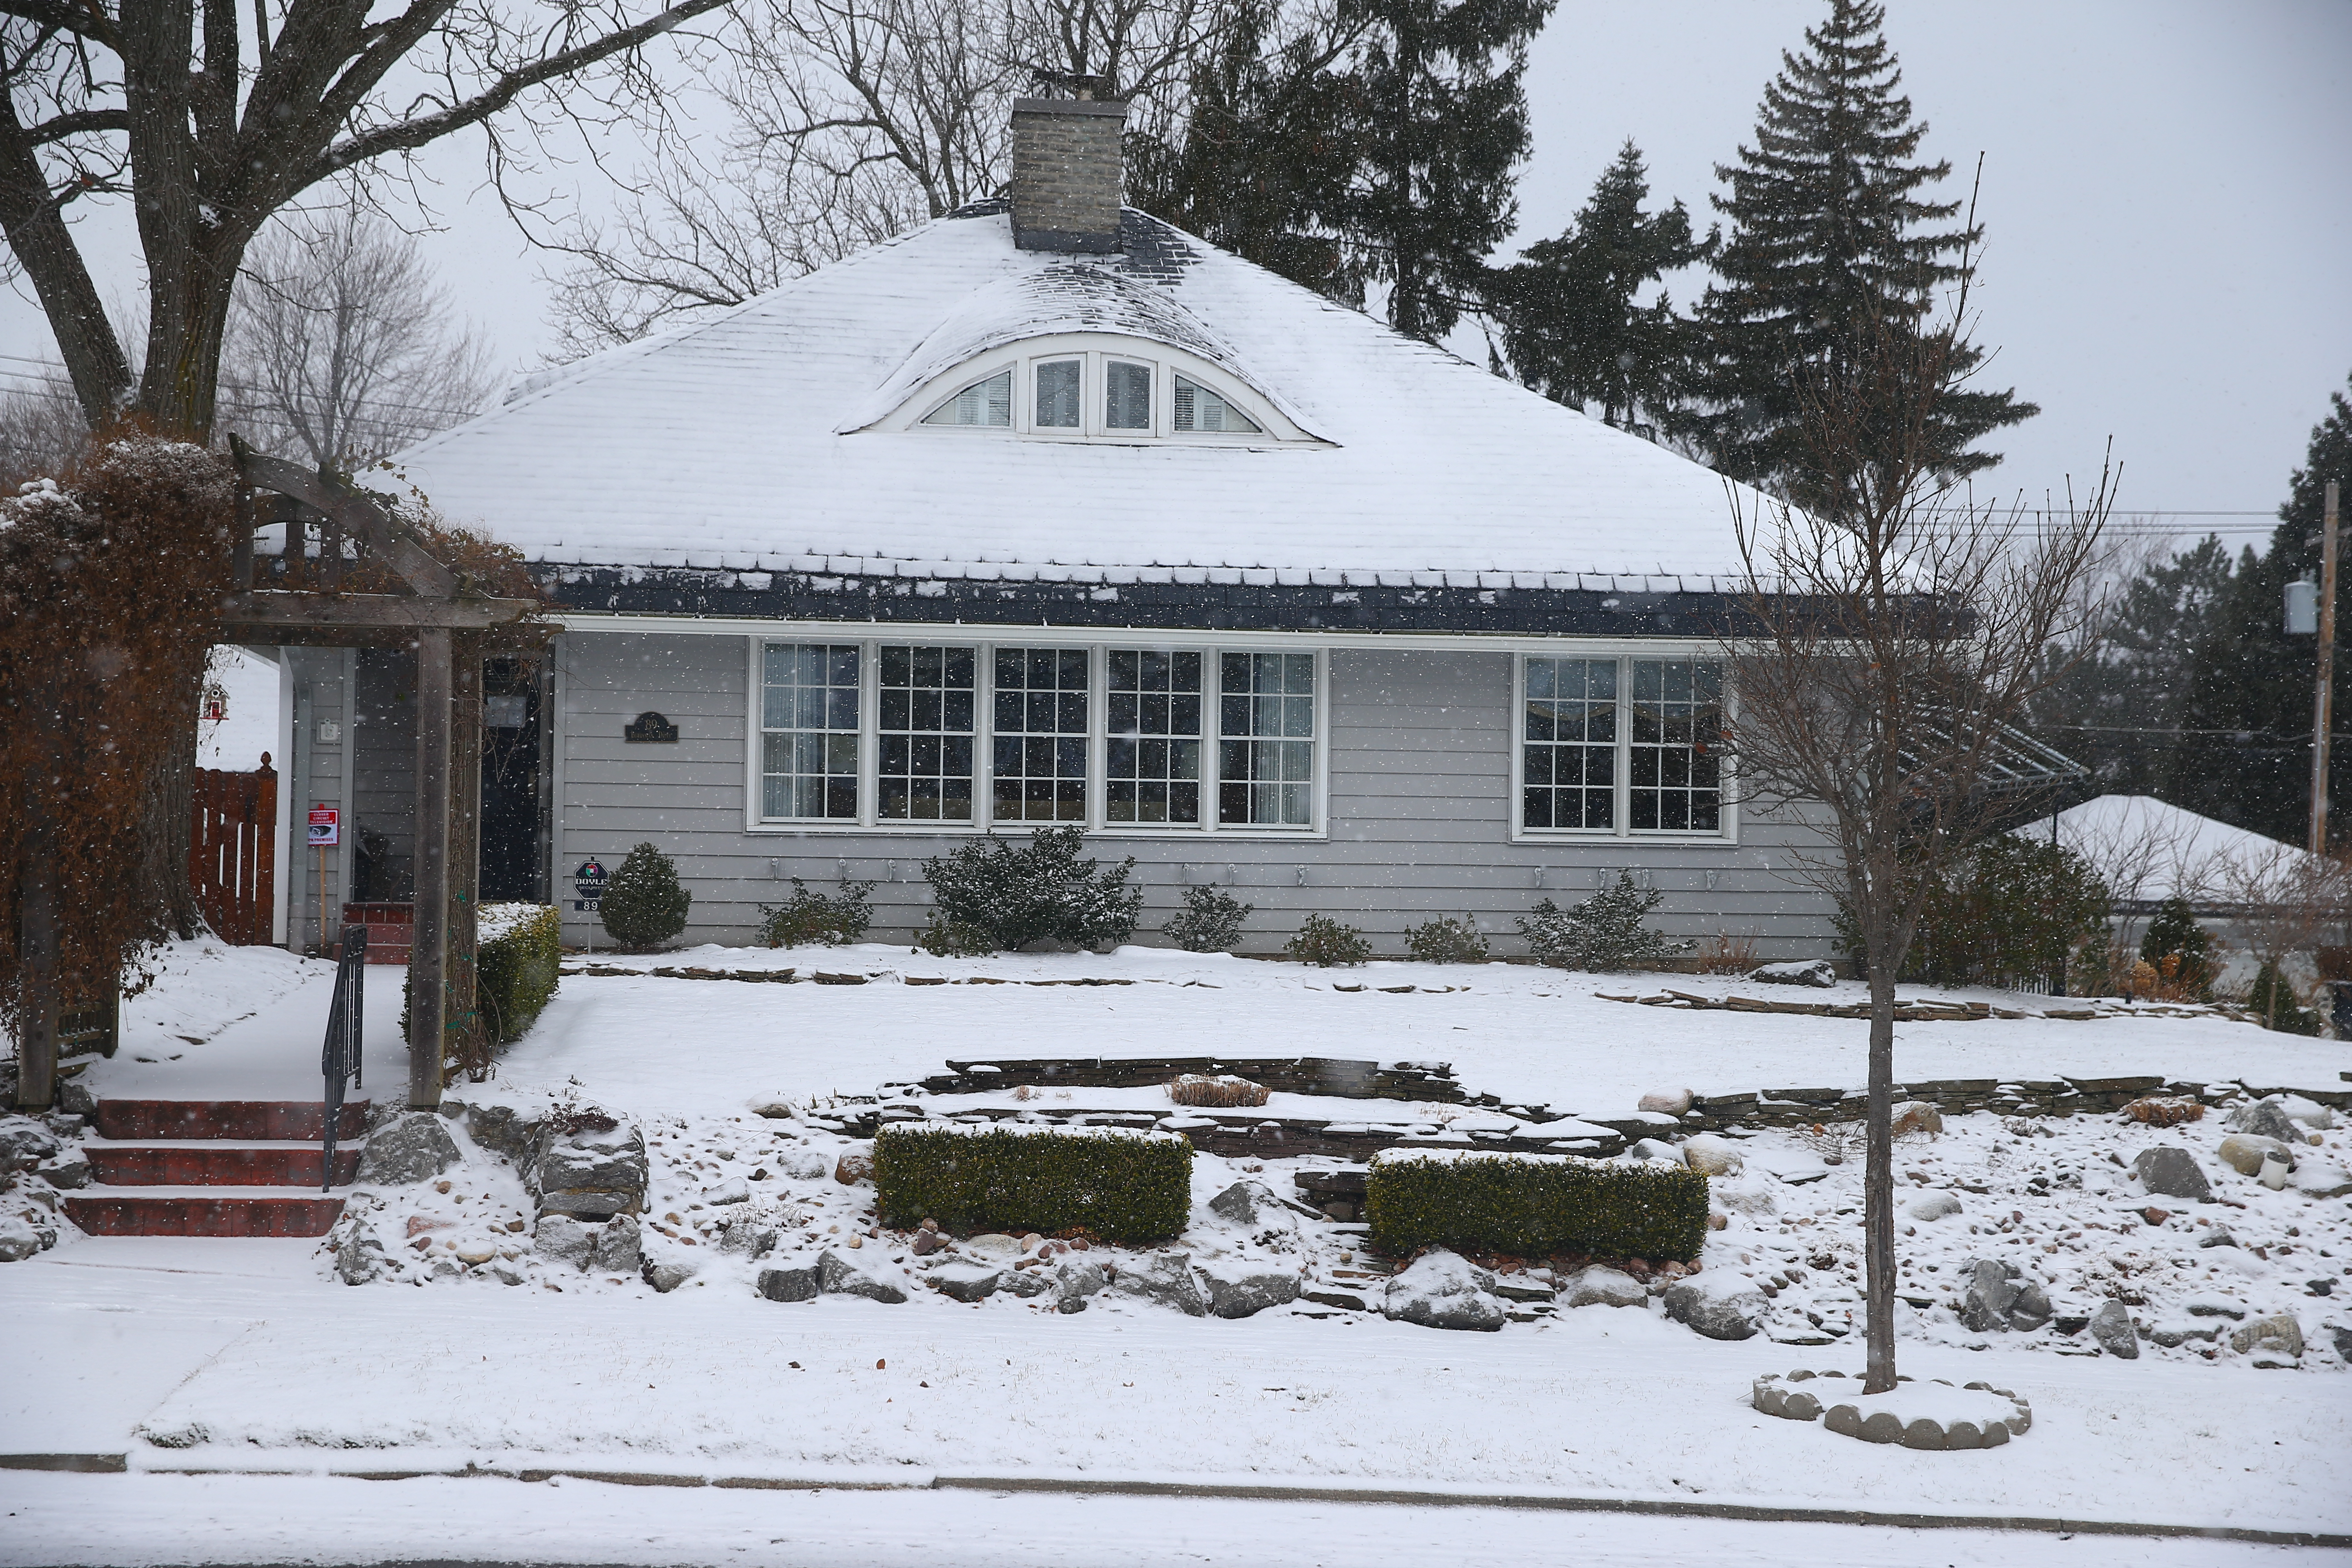 A home on Berryman Drive in Snyder sold in June 2015 for $405,000, 40 percent more than the fair market value of $289,900 based on the town's assessment of $263,800. Photo by John Hickey / Buffalo News.